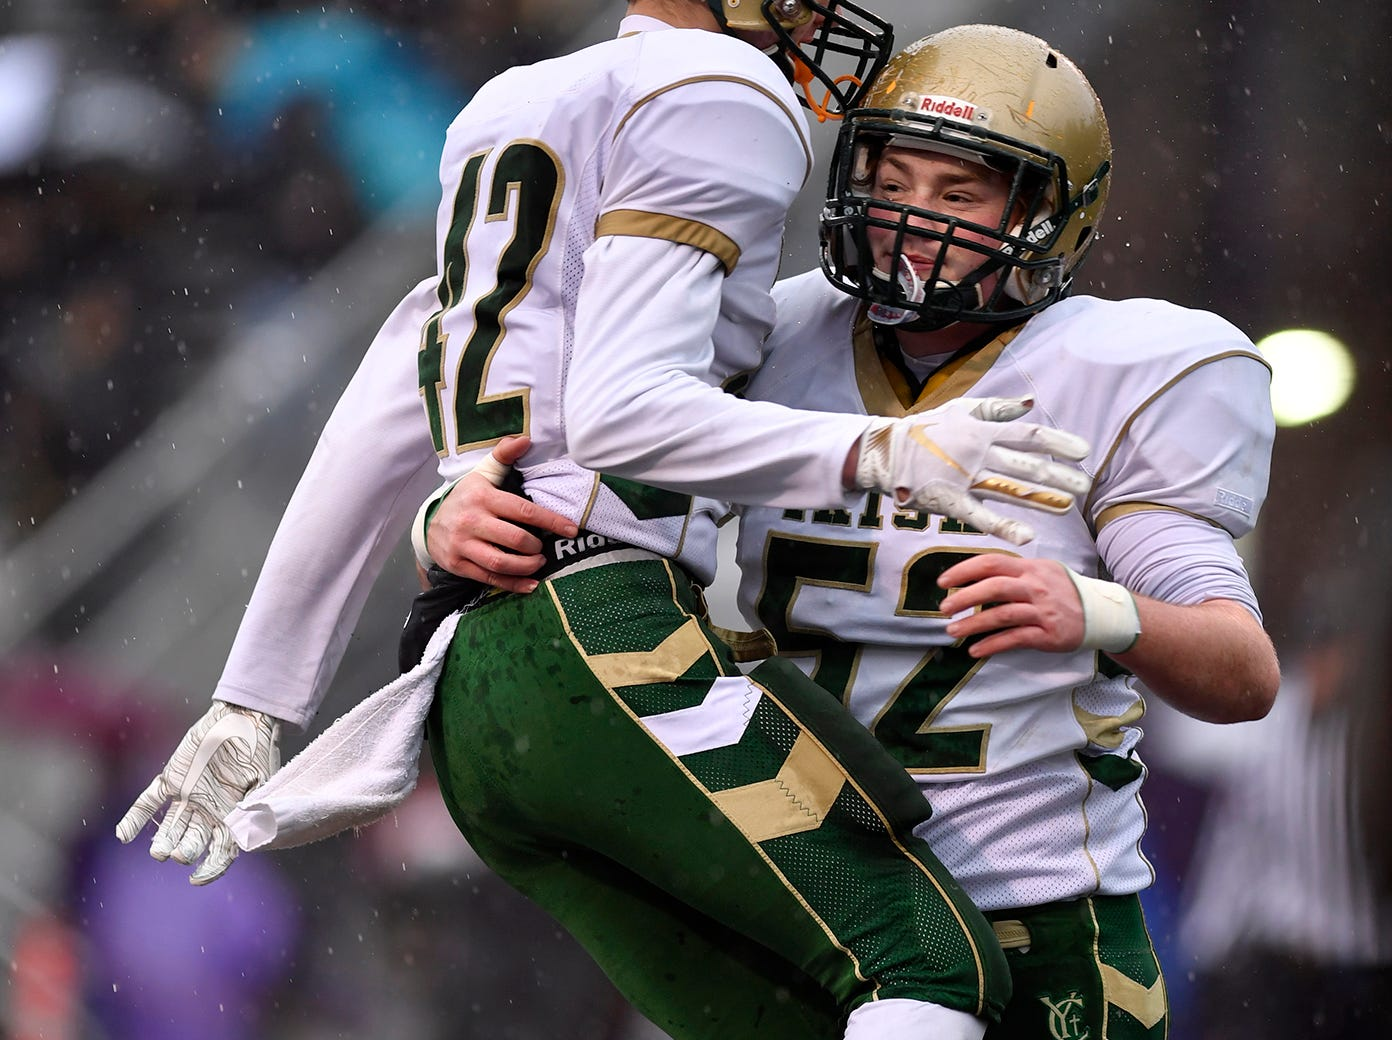 York Catholic's Benjamin Nelson, left, and Luke Brauer celebrate Nelson's touchdown agains Southern Columbia during the PIAA Class 2-A quarterfinal football game in Shamokin, Saturday, November 24, 2018. 